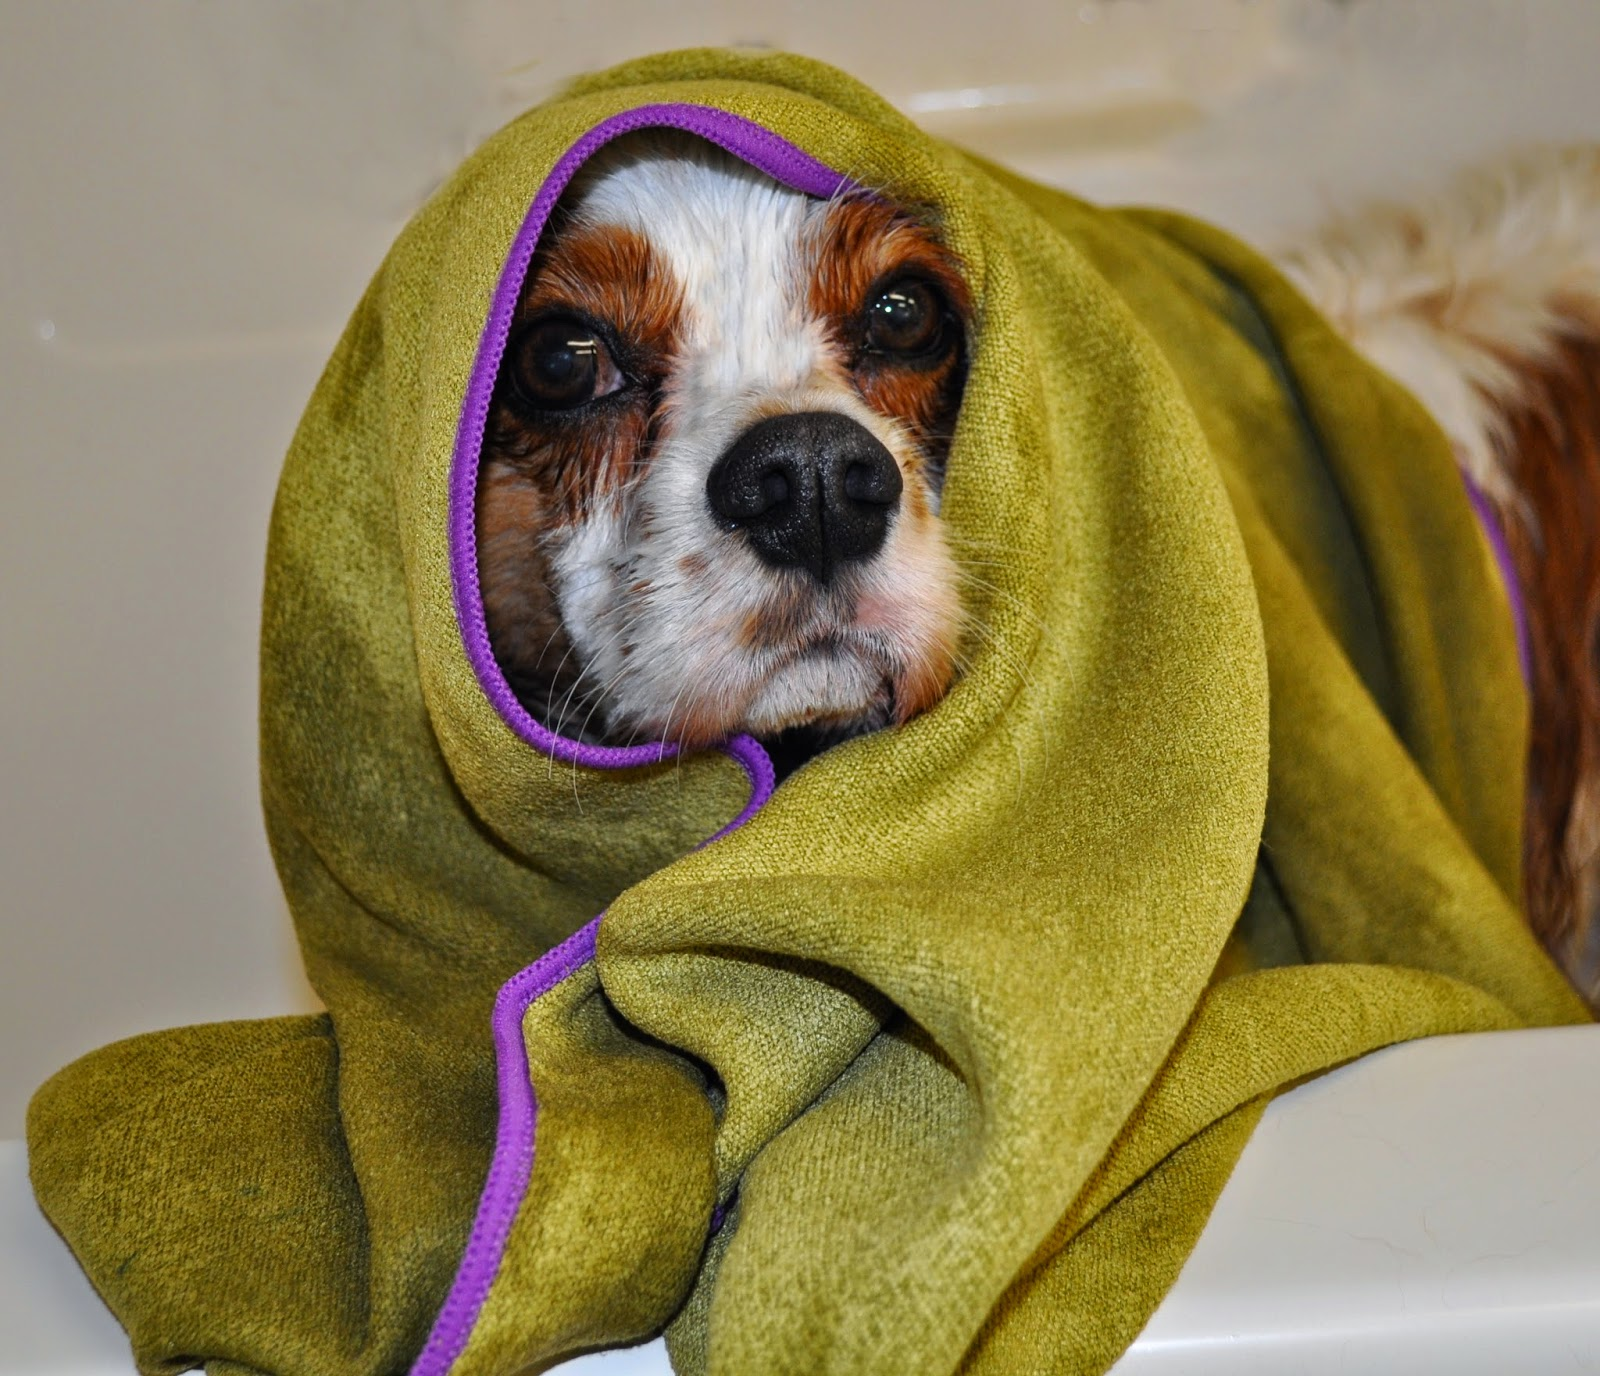 Mugzy's Mutt Dog Towel Review